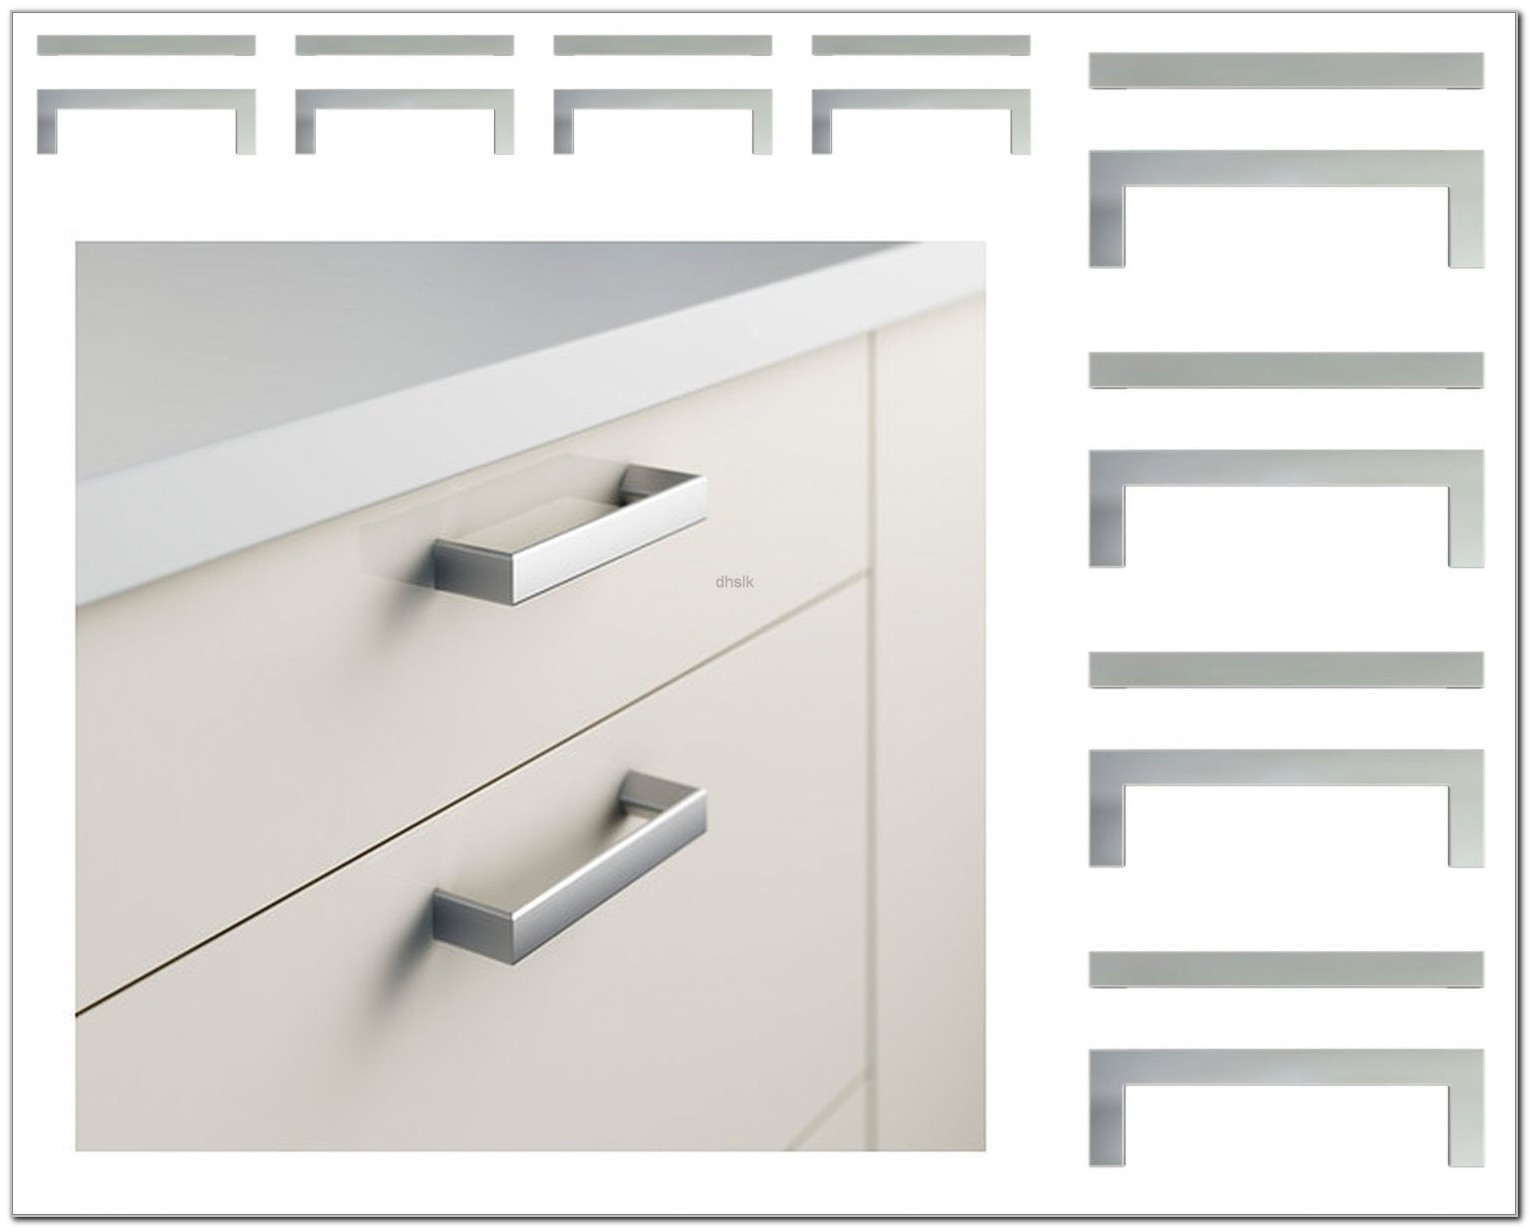 Stainless Steel Cabinet Pulls Ikea